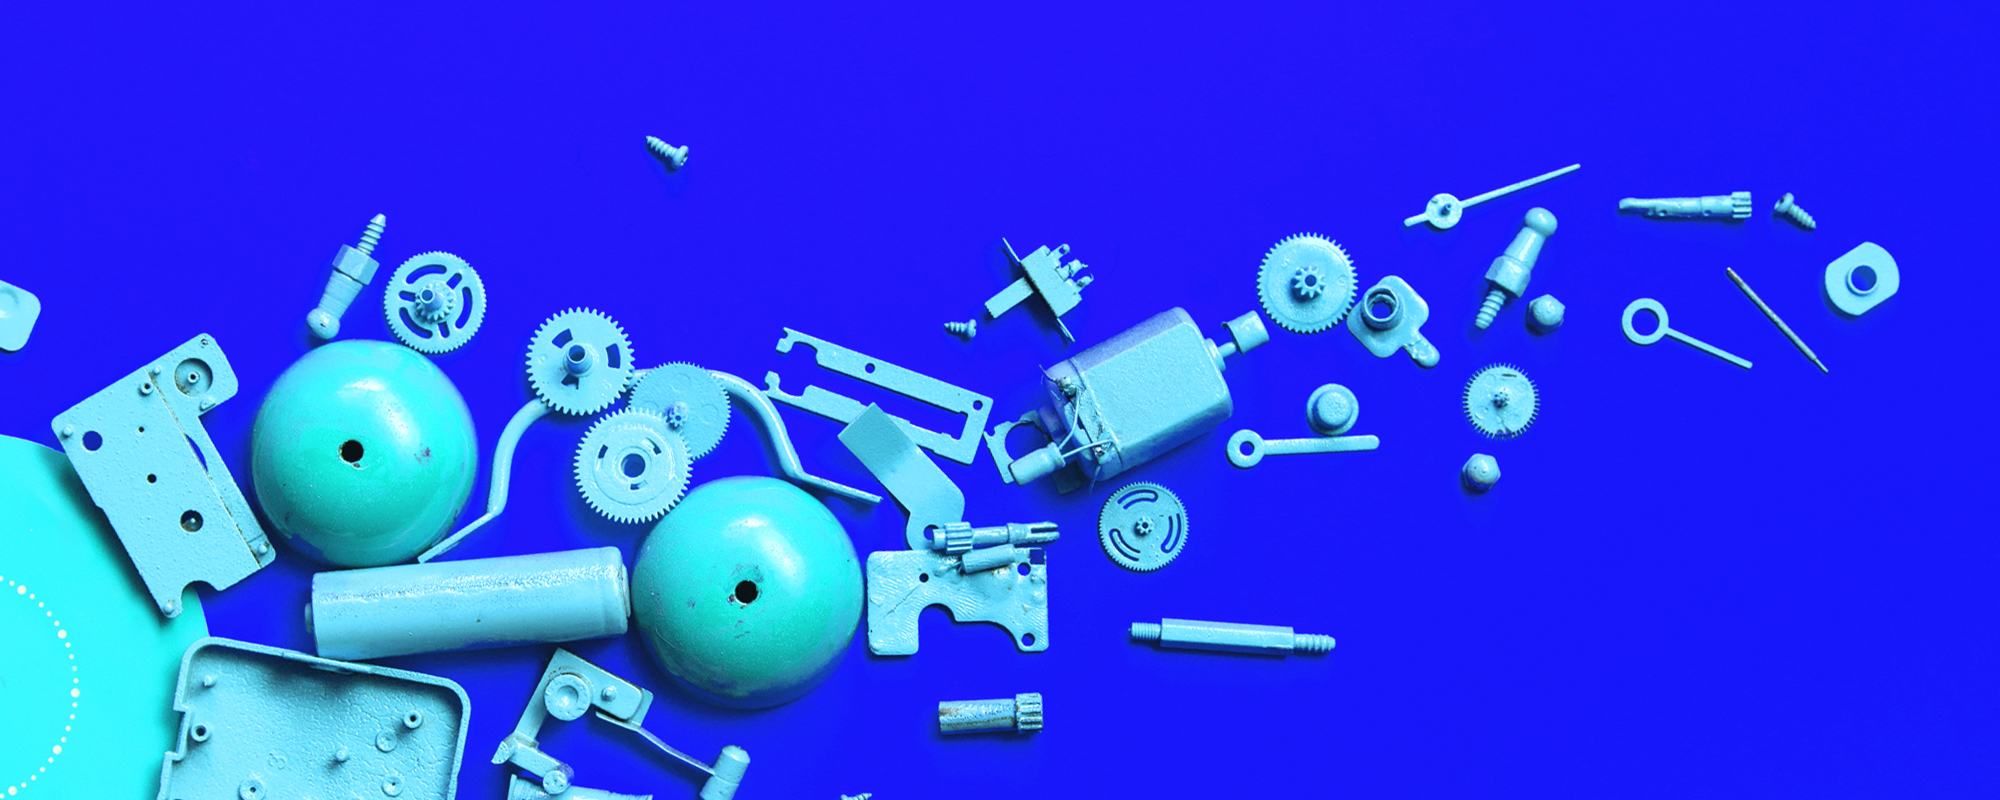 deconstructed parts on a blue canvas